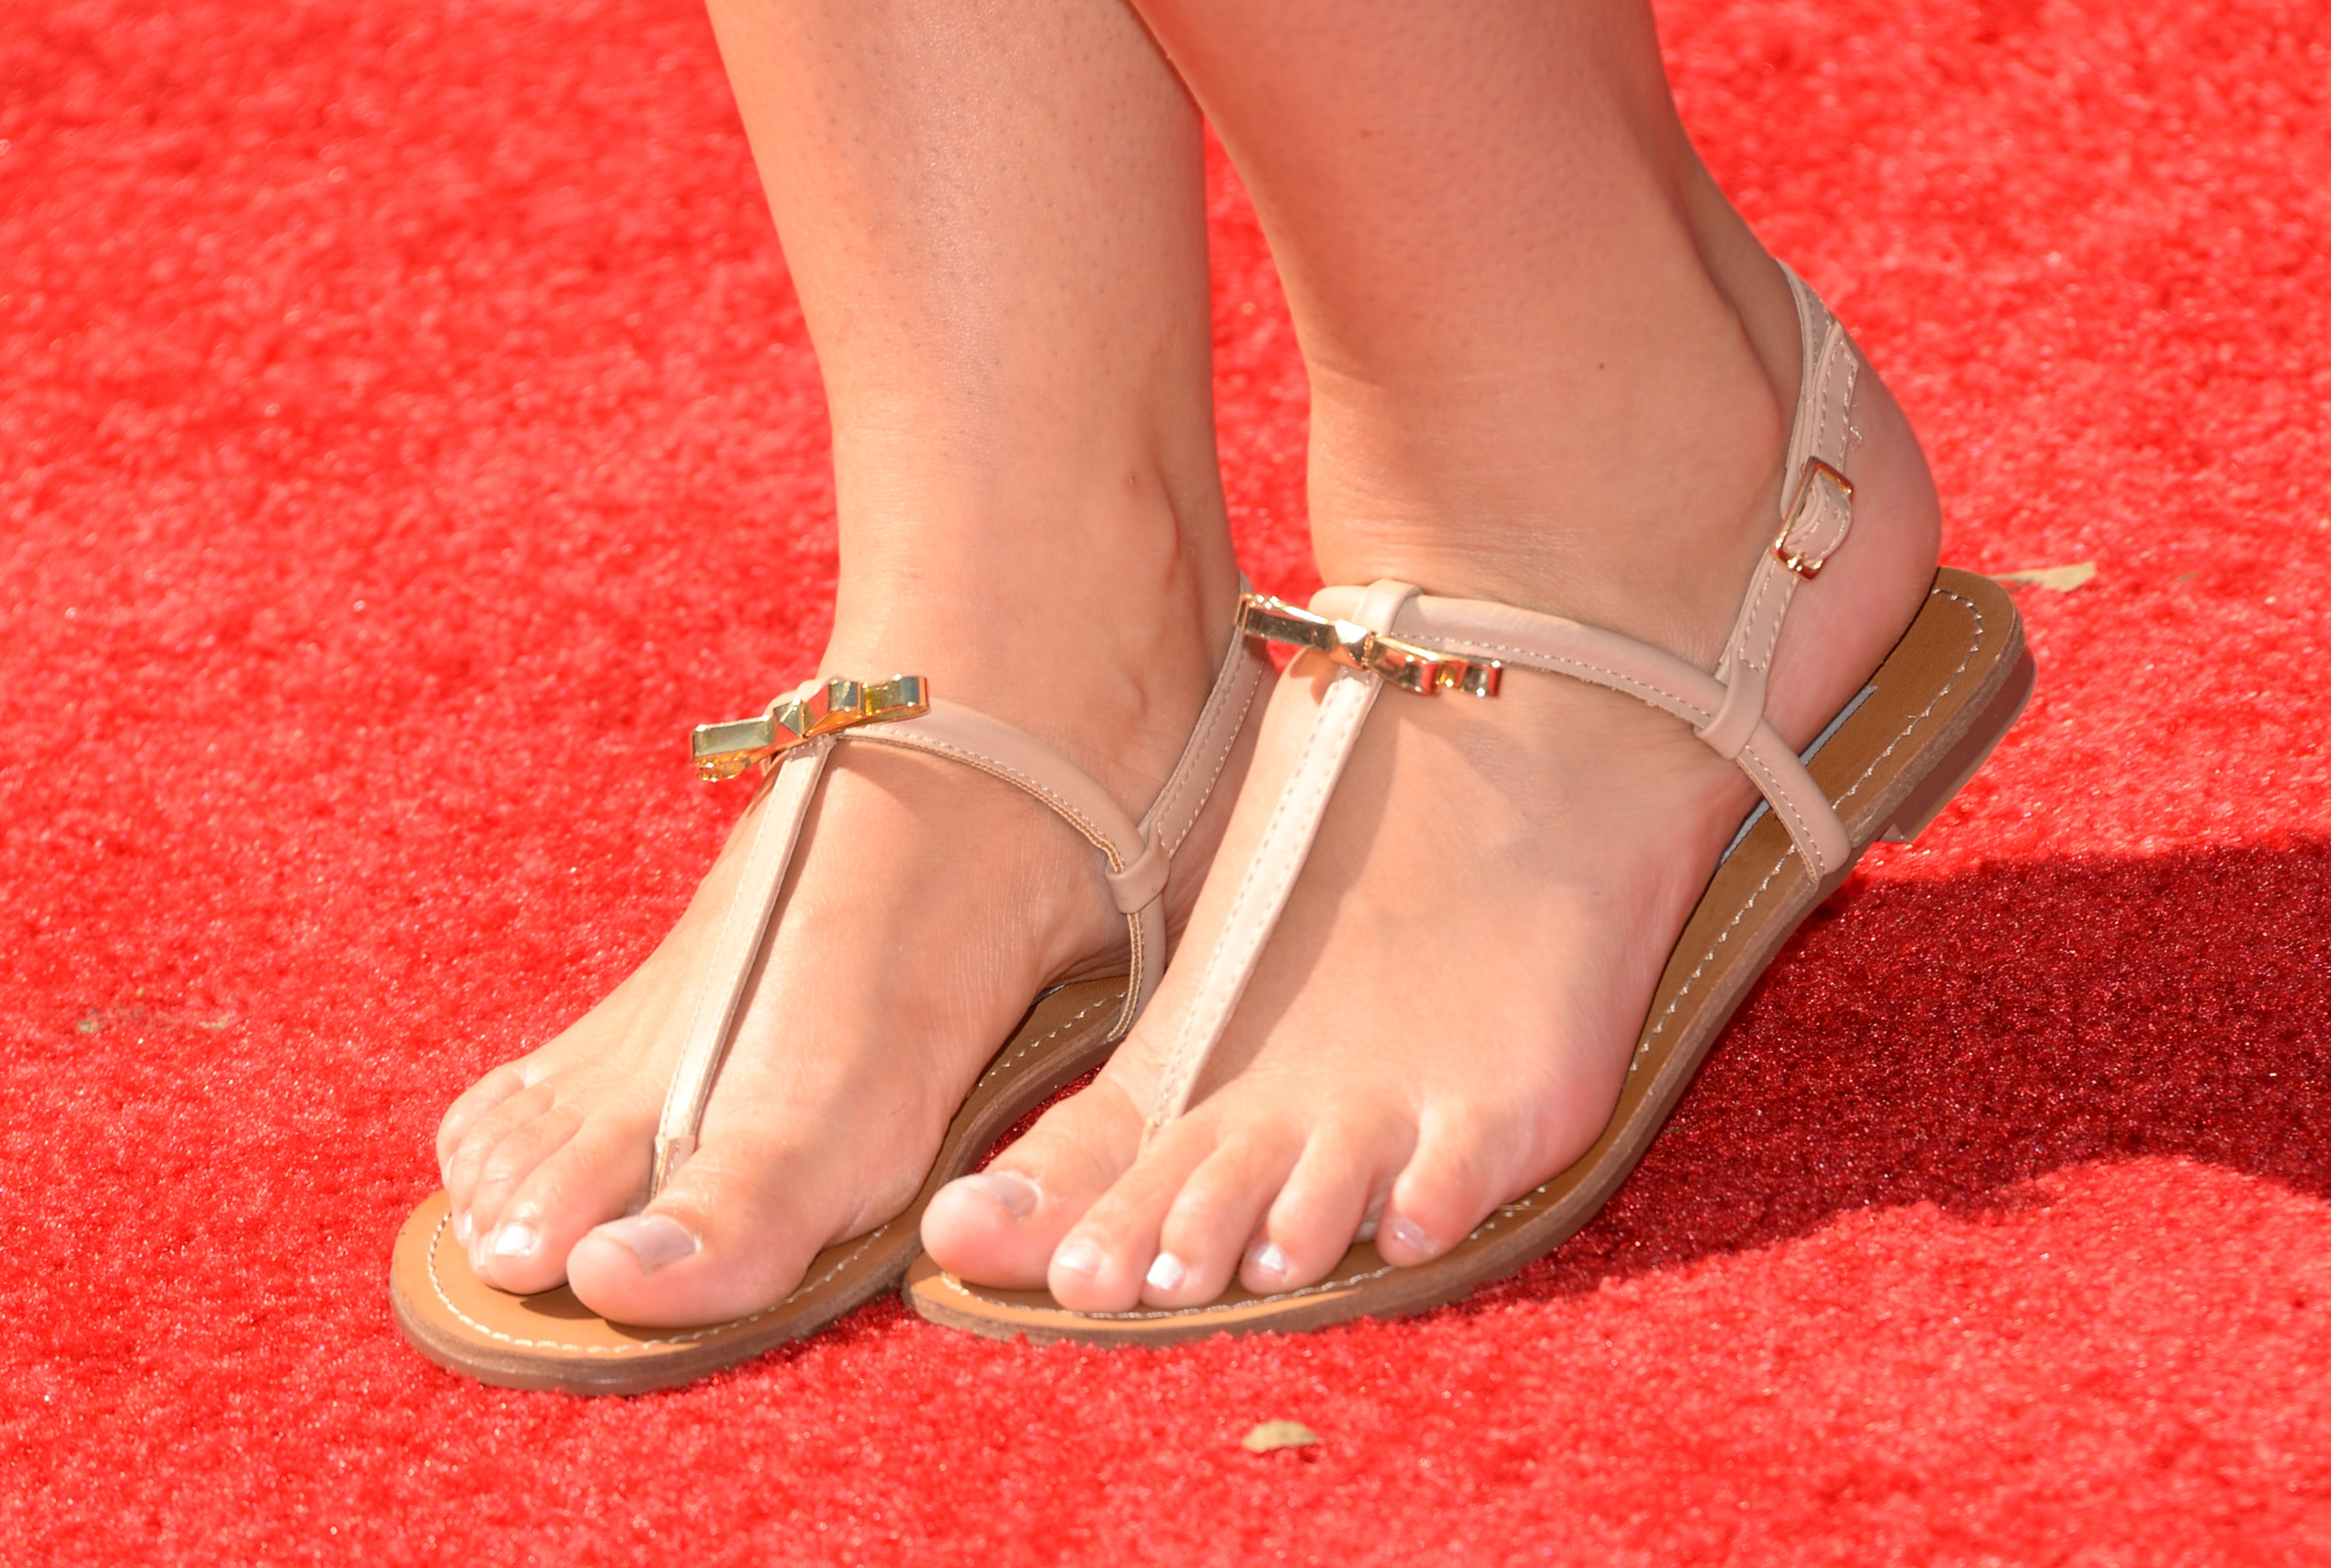 21f9605b03e50 8 Ways to Make Sandals More Comfortable